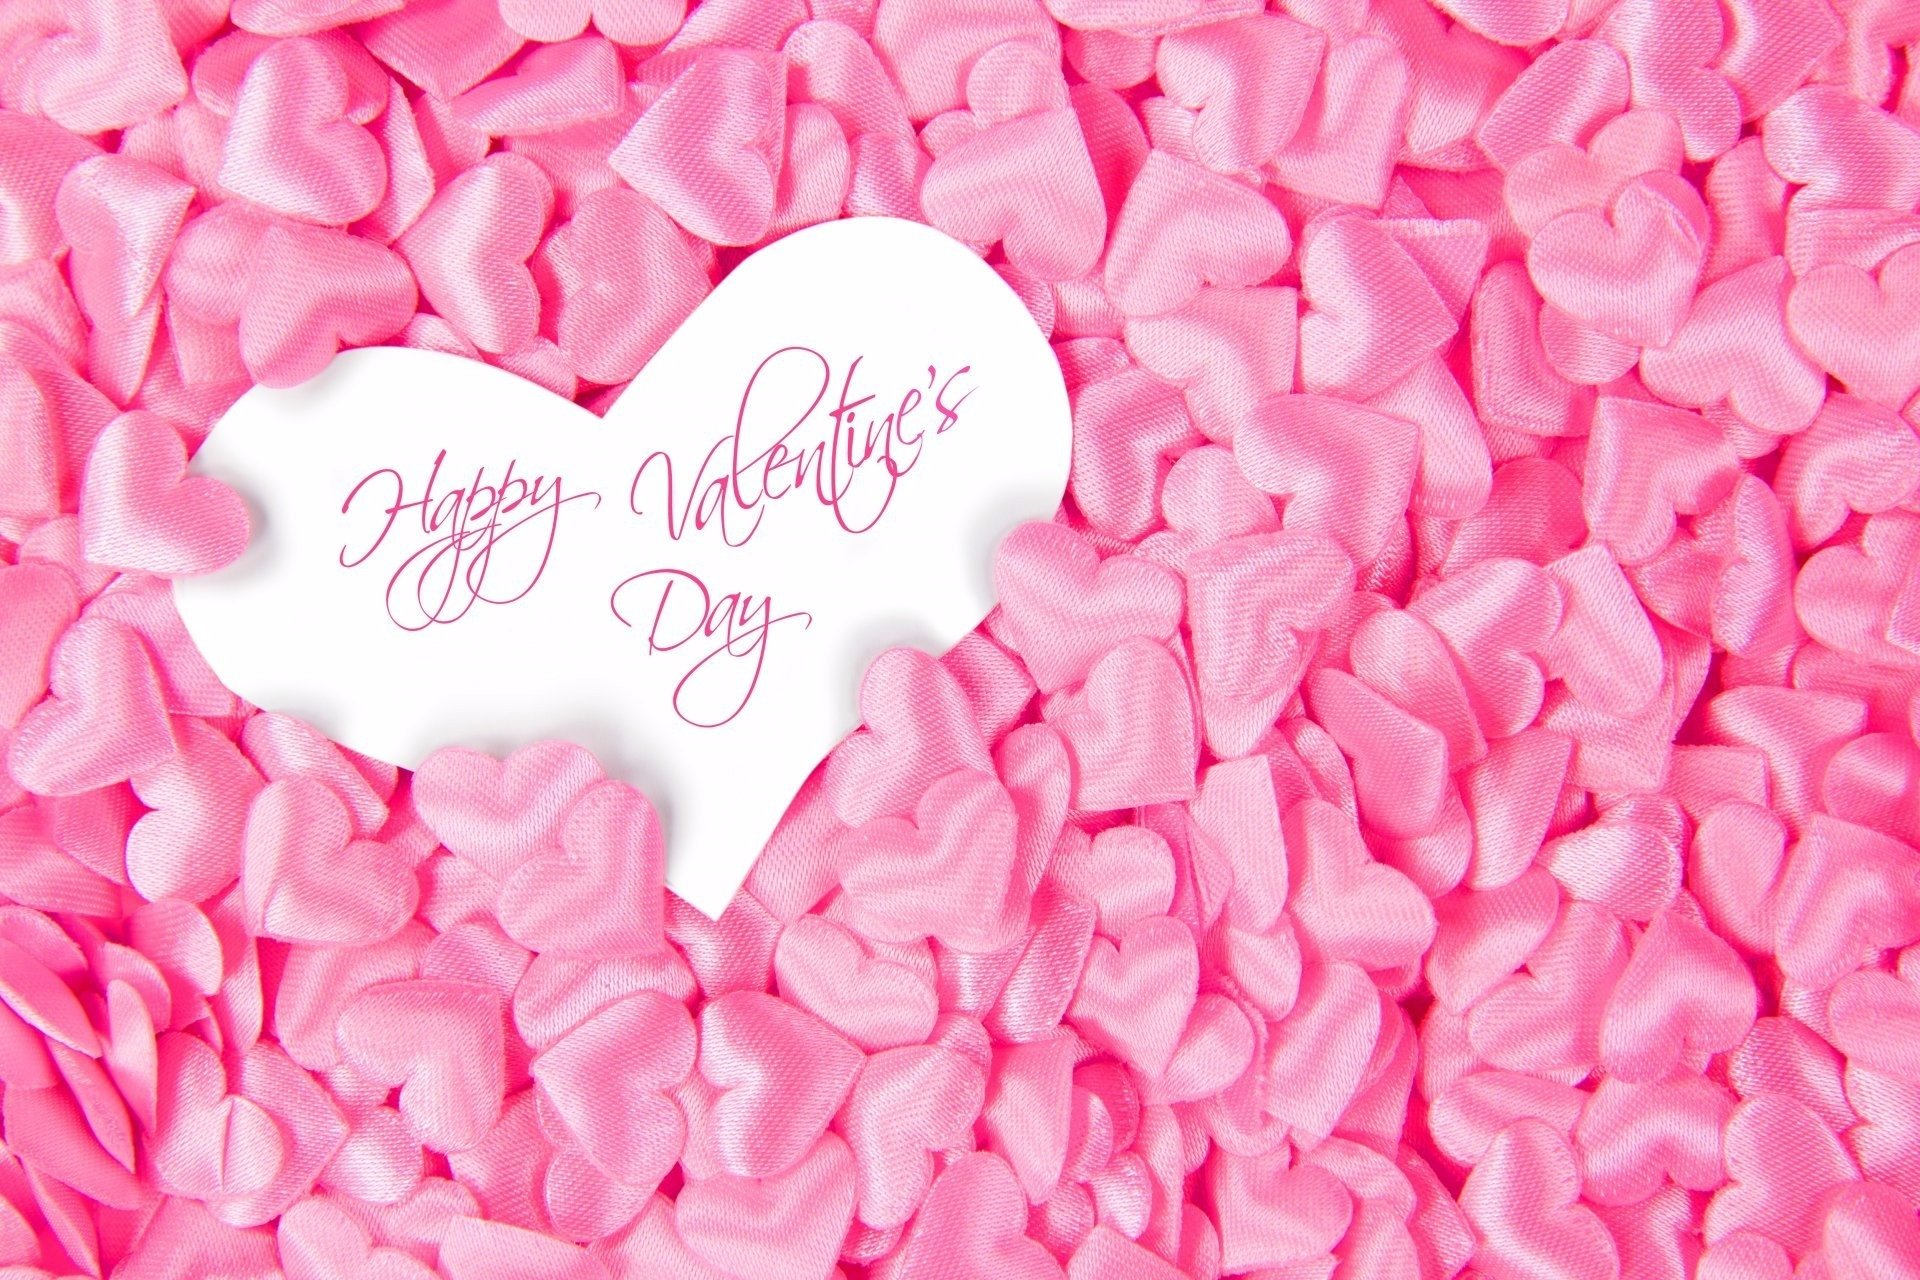 Holiday - Valentine's Day  Holiday Heart Pink Happy Valentine's Day Wallpaper